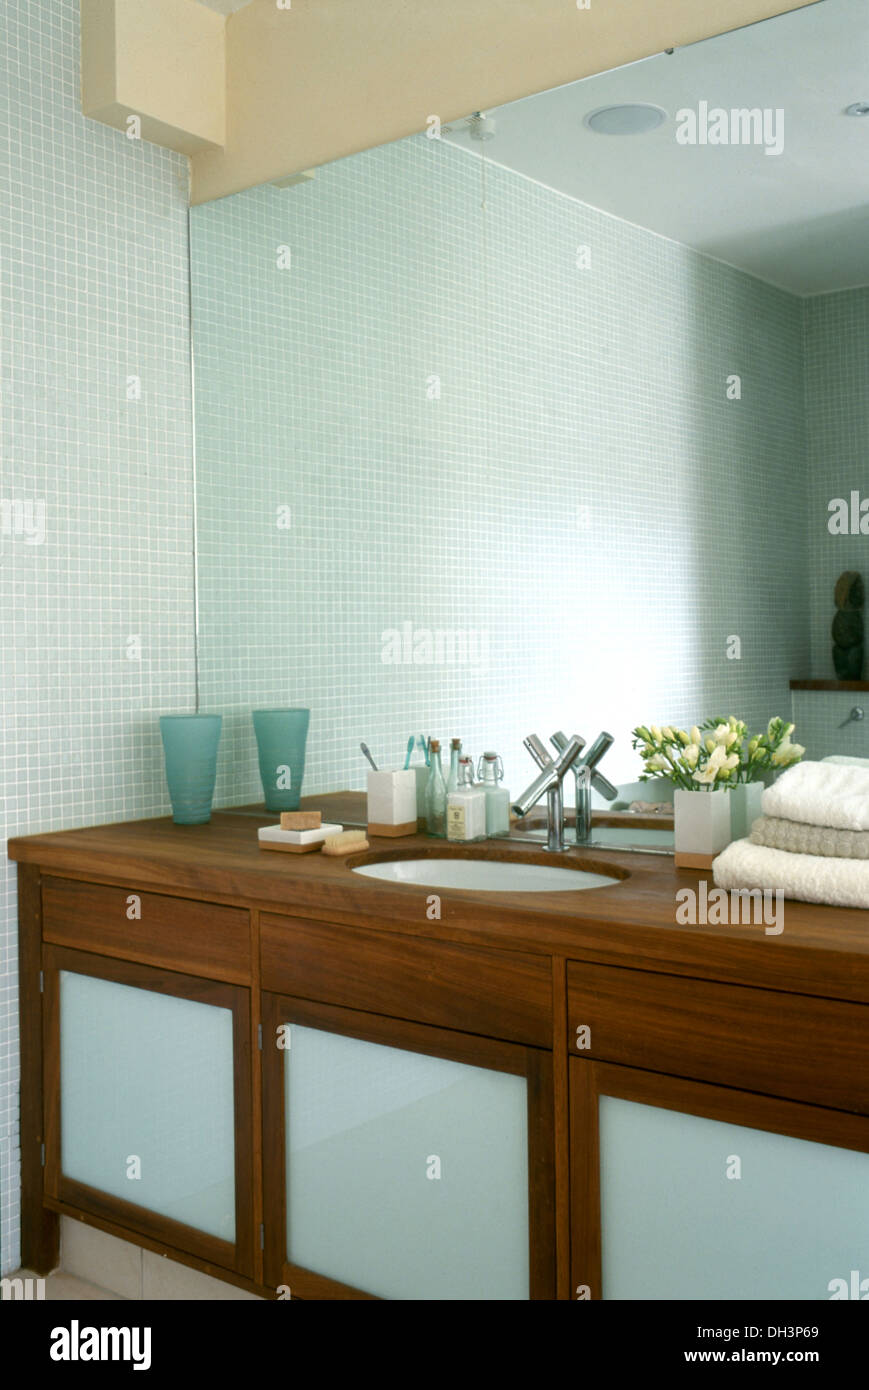 Vanity Unit Stock Photos Amp Vanity Unit Stock Images Alamy